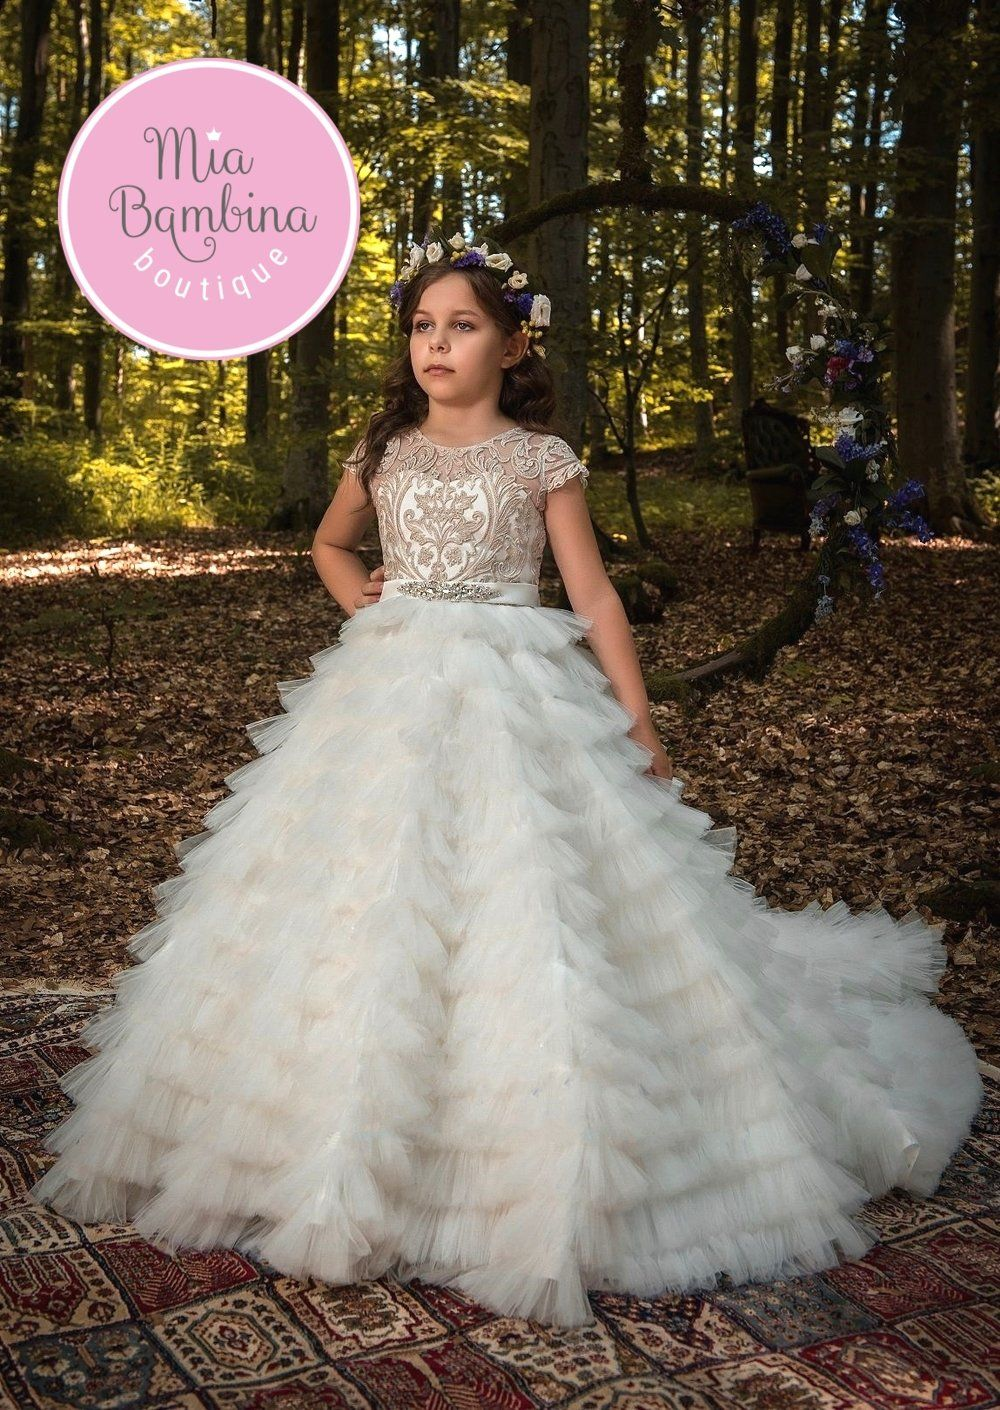 Flower Girl Dresses Veracruz Ivory And Gold Flower Girl Dress With Train And Puffy Skirt In 2021 Flower Girl Dresses Kids Dress Girls Pageant Dresses [ 1410 x 1000 Pixel ]